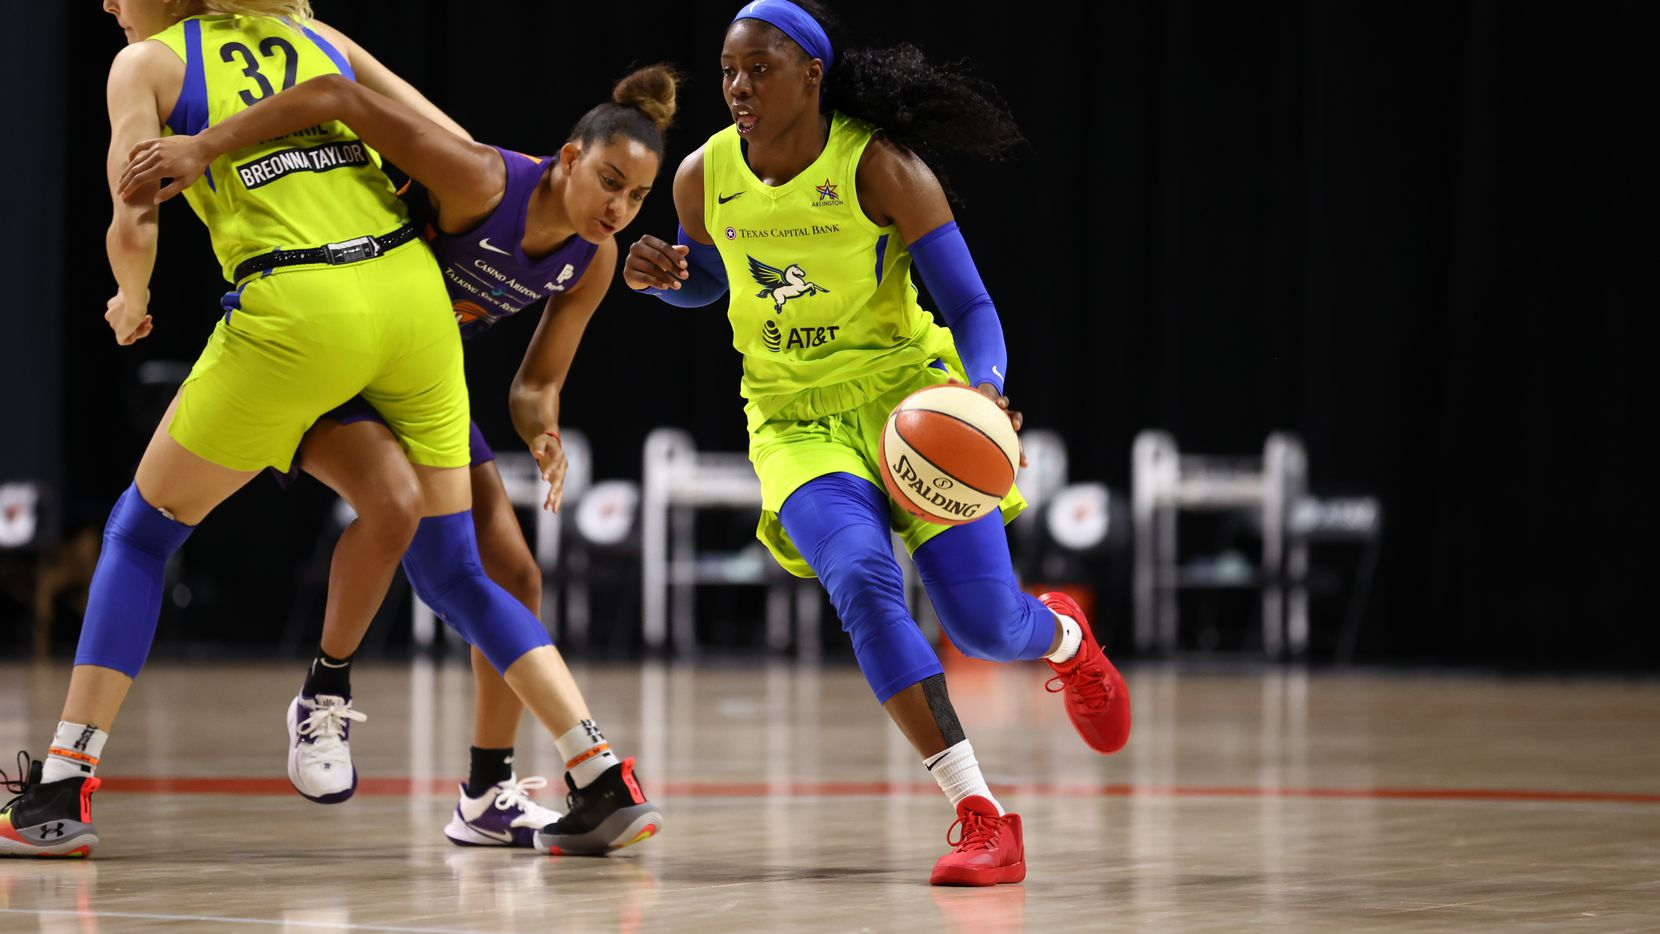 PALMETTO, FL - AUGUST 16: Arike Ogunbowale #24 of the Dallas Wings handles the ball against the Phoenix Mercury on August 16, 2020 at Feld Entertainment Center in Palmetto, Florida. NOTE TO USER: User expressly acknowledges and agrees that, by downloading and/or using this Photograph, user is consenting to the terms and conditions of the Getty Images License Agreement. Mandatory Copyright Notice: Copyright 2020 NBAE (Photo by Ned Dishman/NBAE via Getty Images)